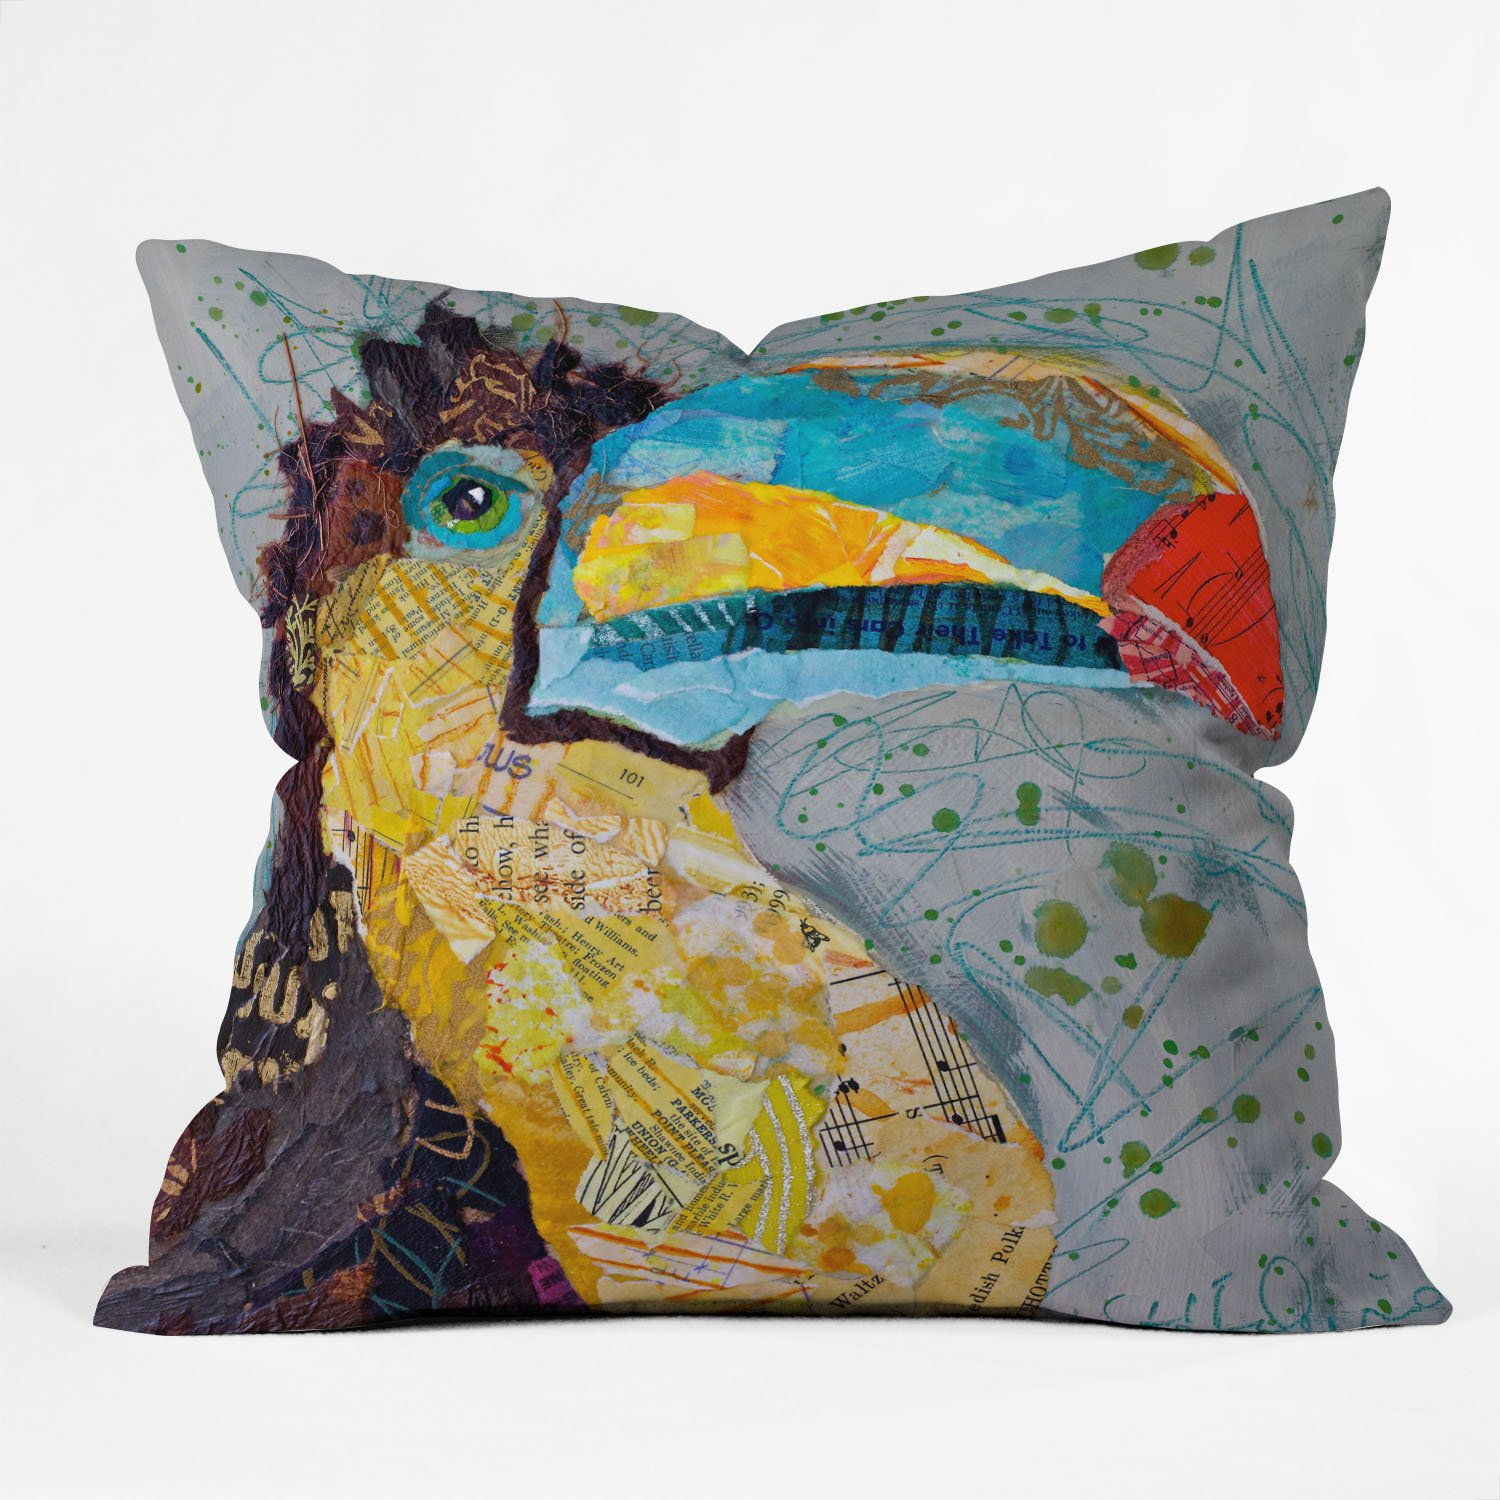 Deny Designs Elizabeth St Hilaire Nelson Toucan Dance Throw Pillow, 26 x 26